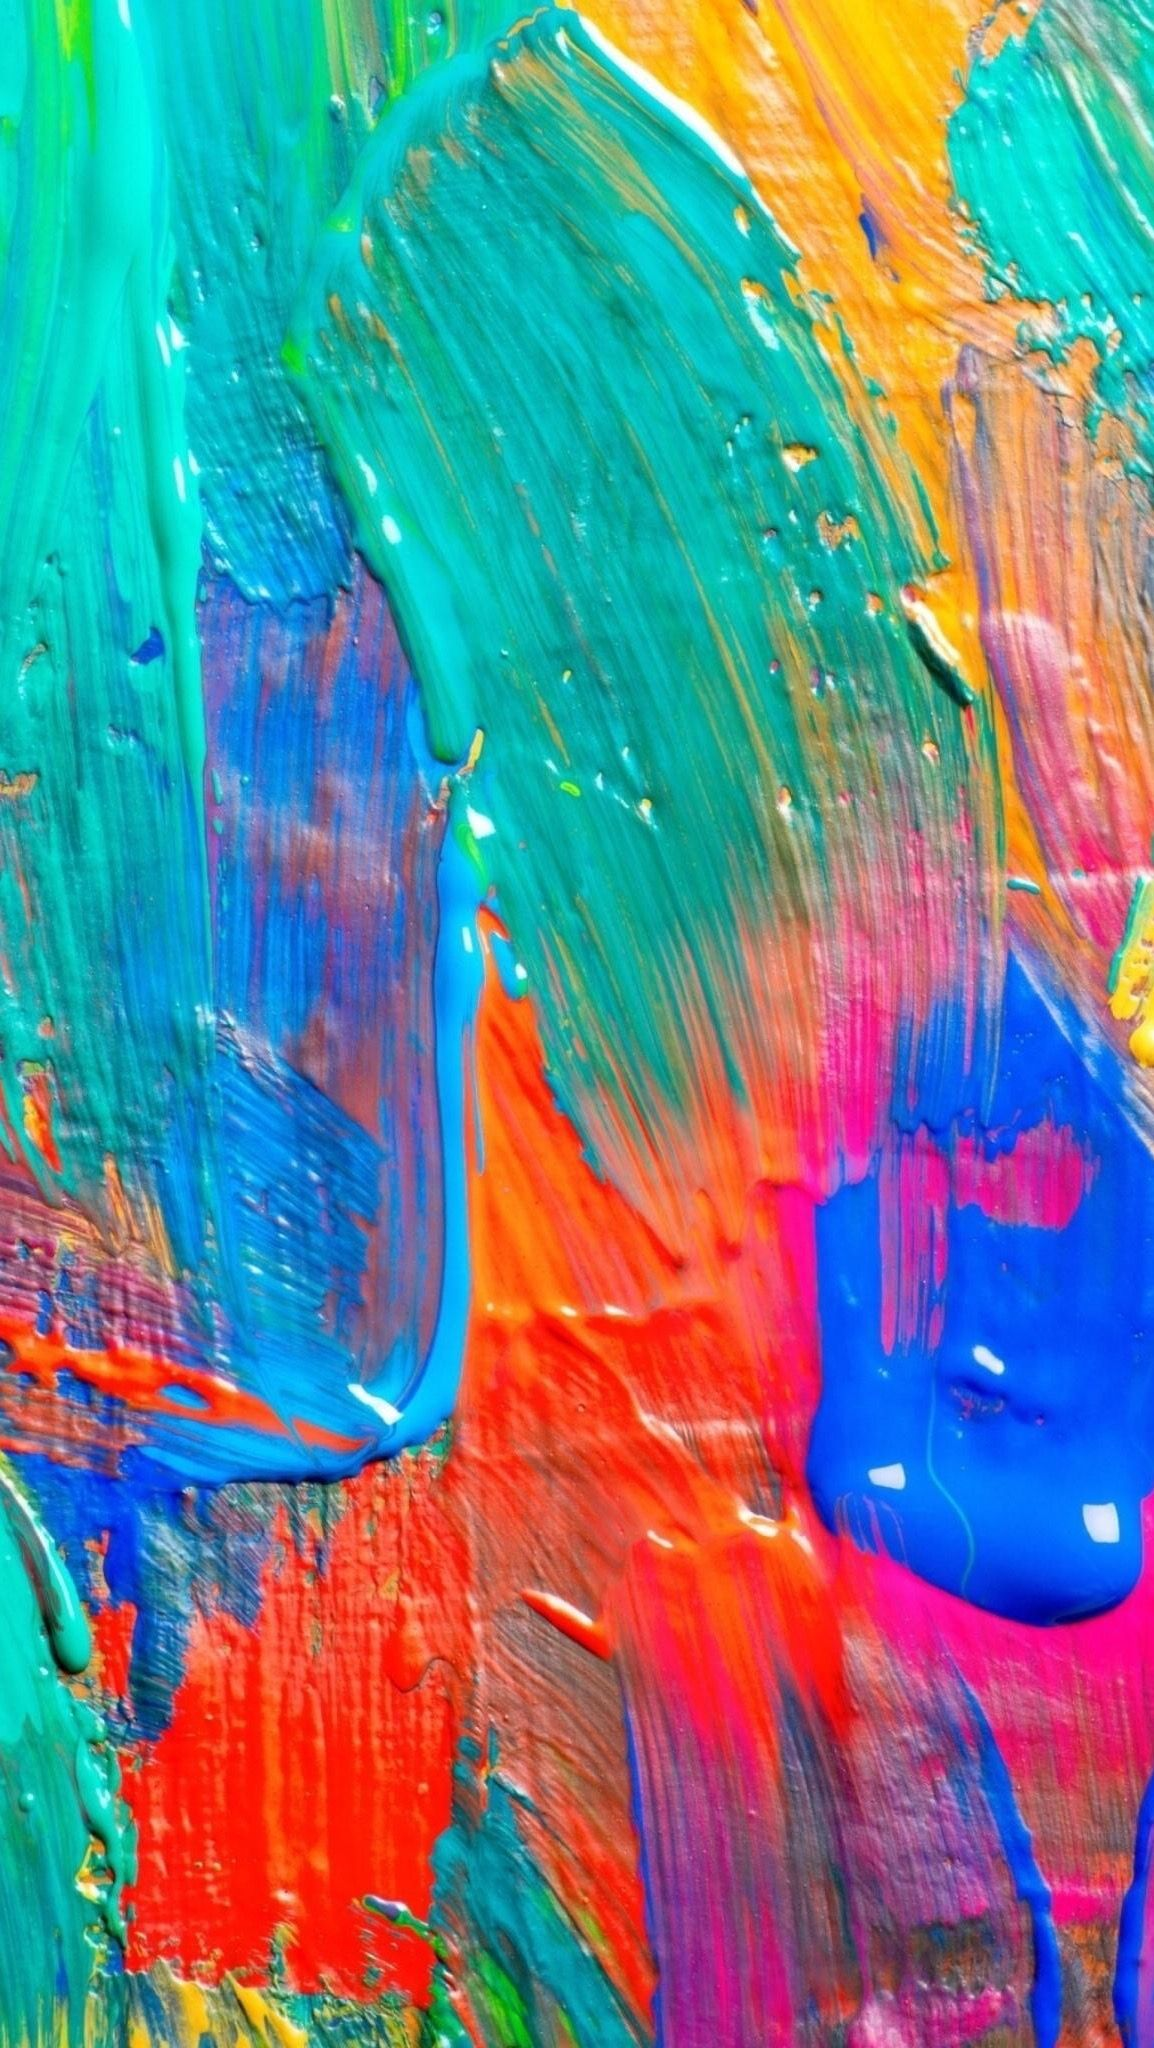 HD iPhone wallpaper Painting/brush strokes | Wallpapers ...